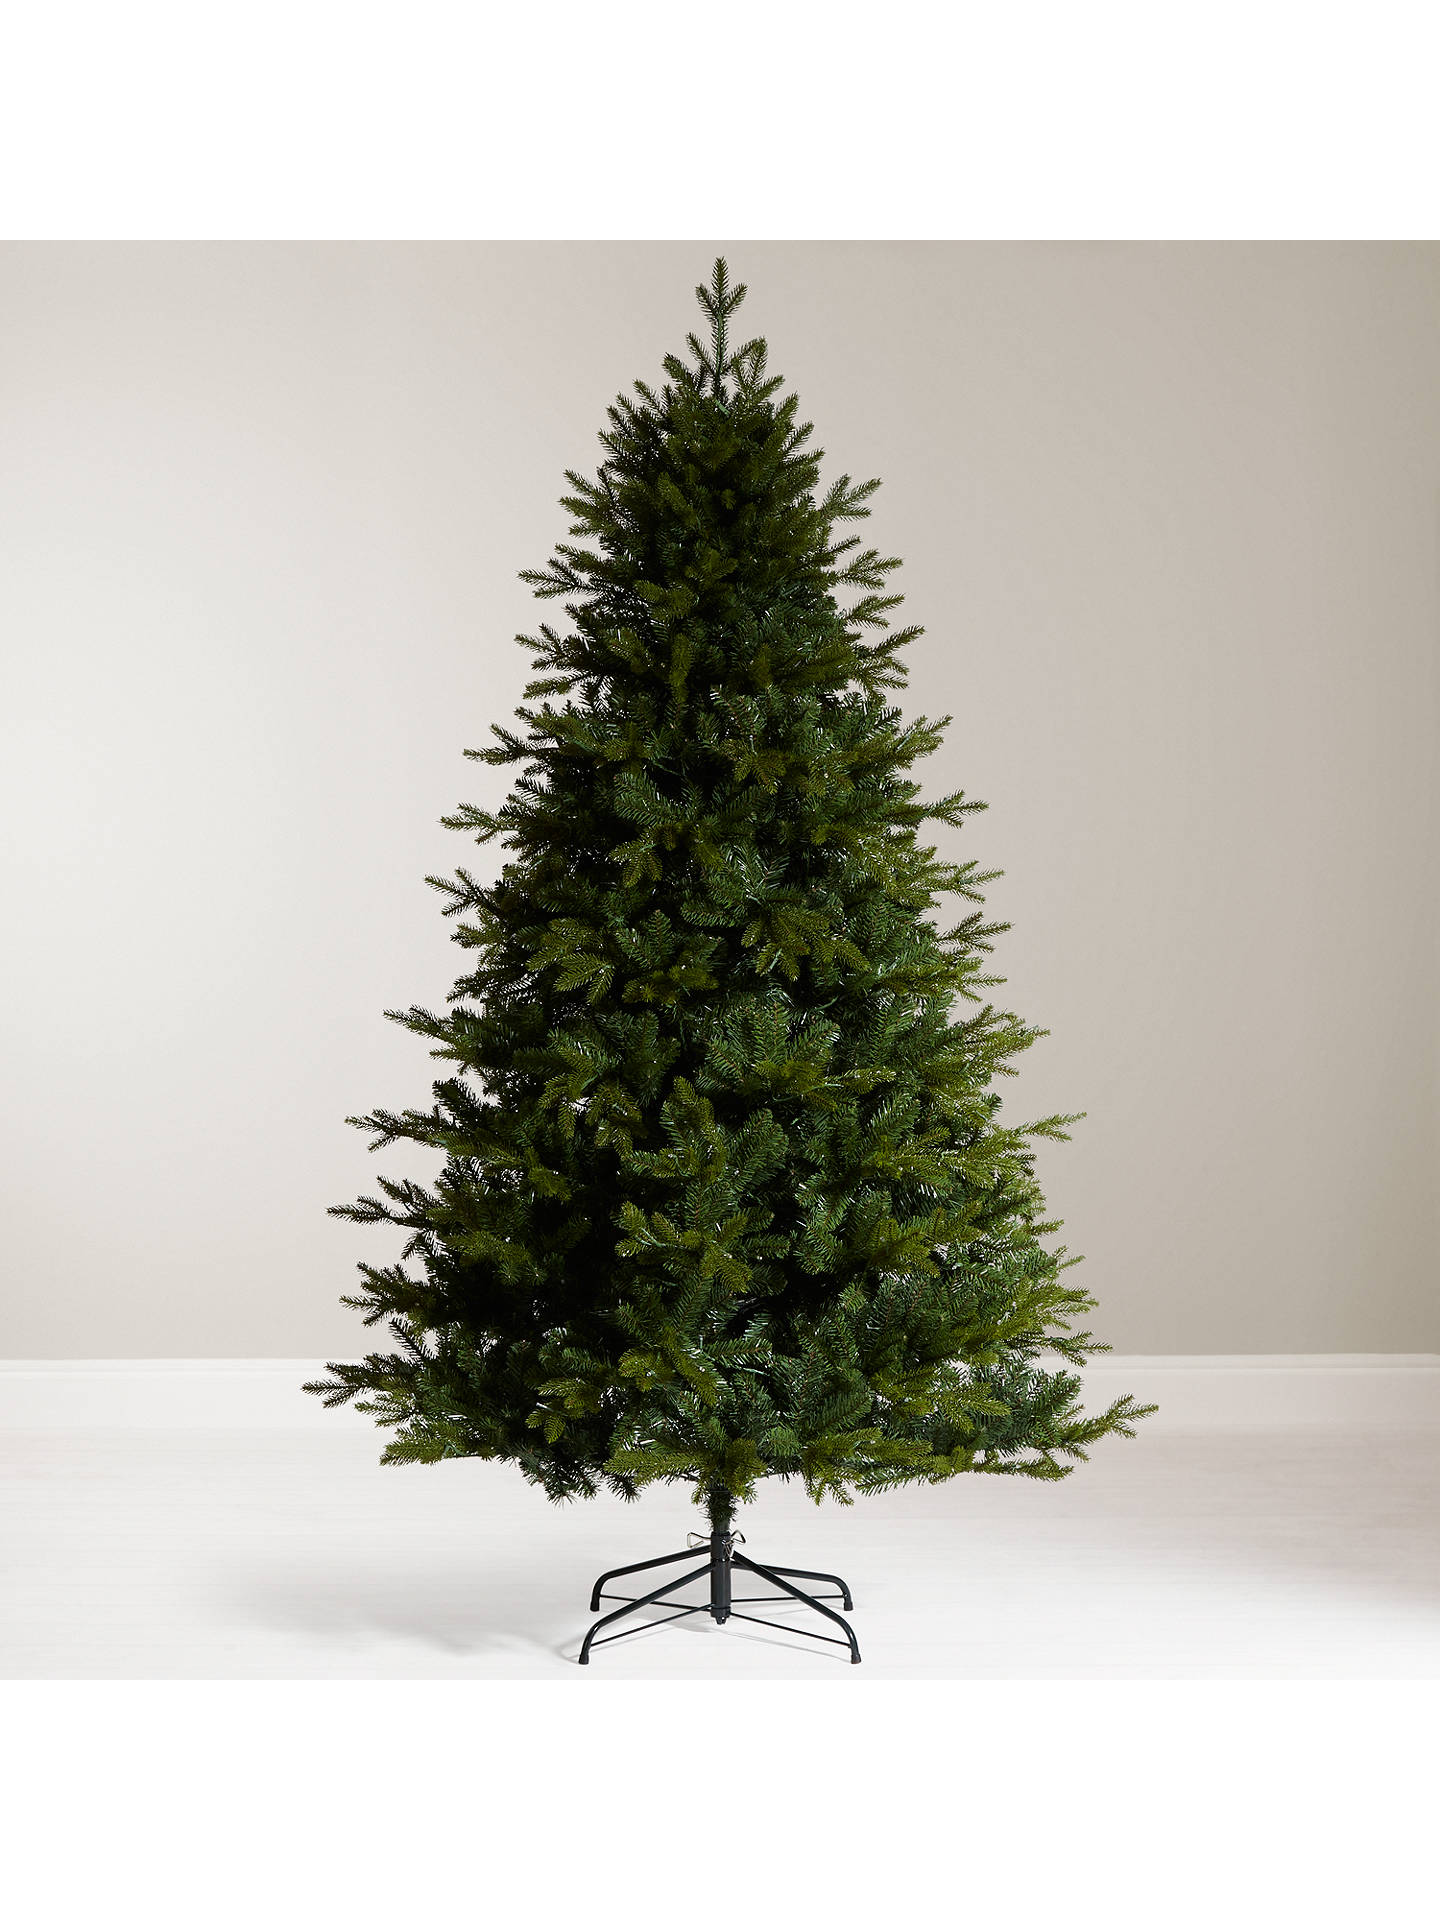 Buy John Lewis Kensington Pre-Lit Christmas Tree, 7ft Online at johnlewis.com